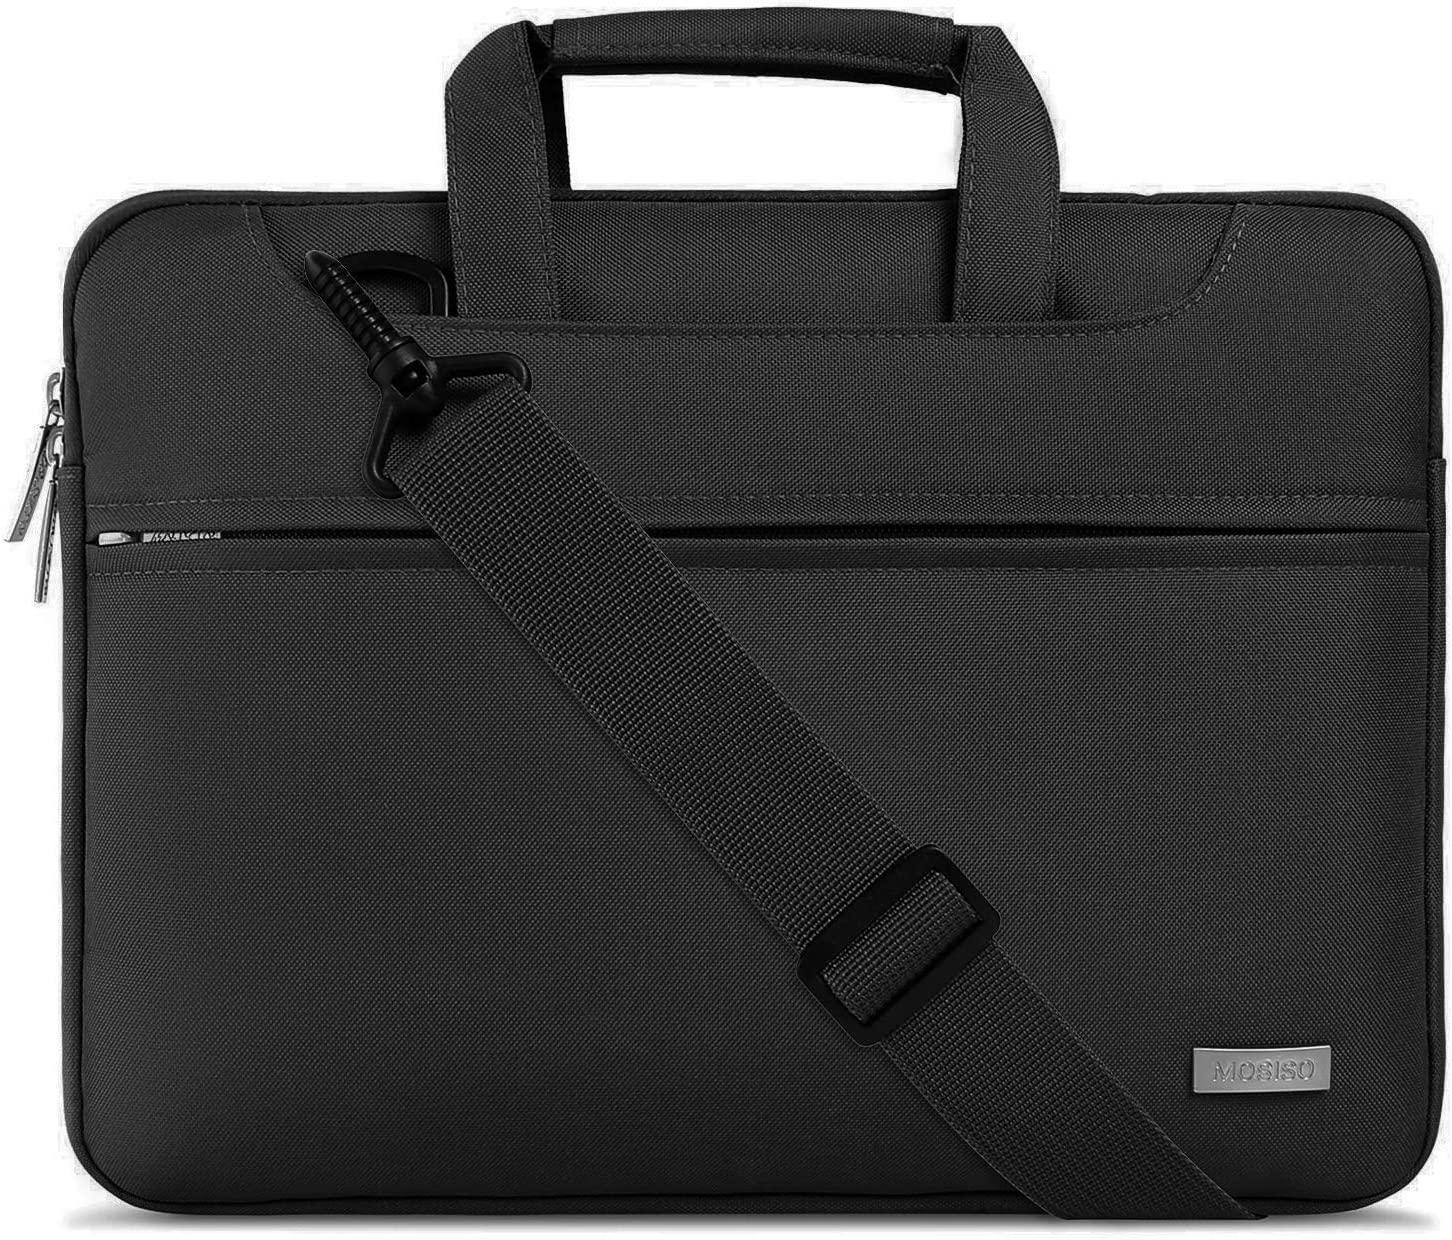 MOSISO Laptop Shoulder Bag Compatible with 13-13.3 inch MacBook Pro, MacBook Air, Notebook Computer, Polyester Sleeve with Back Trolley Belt, Black